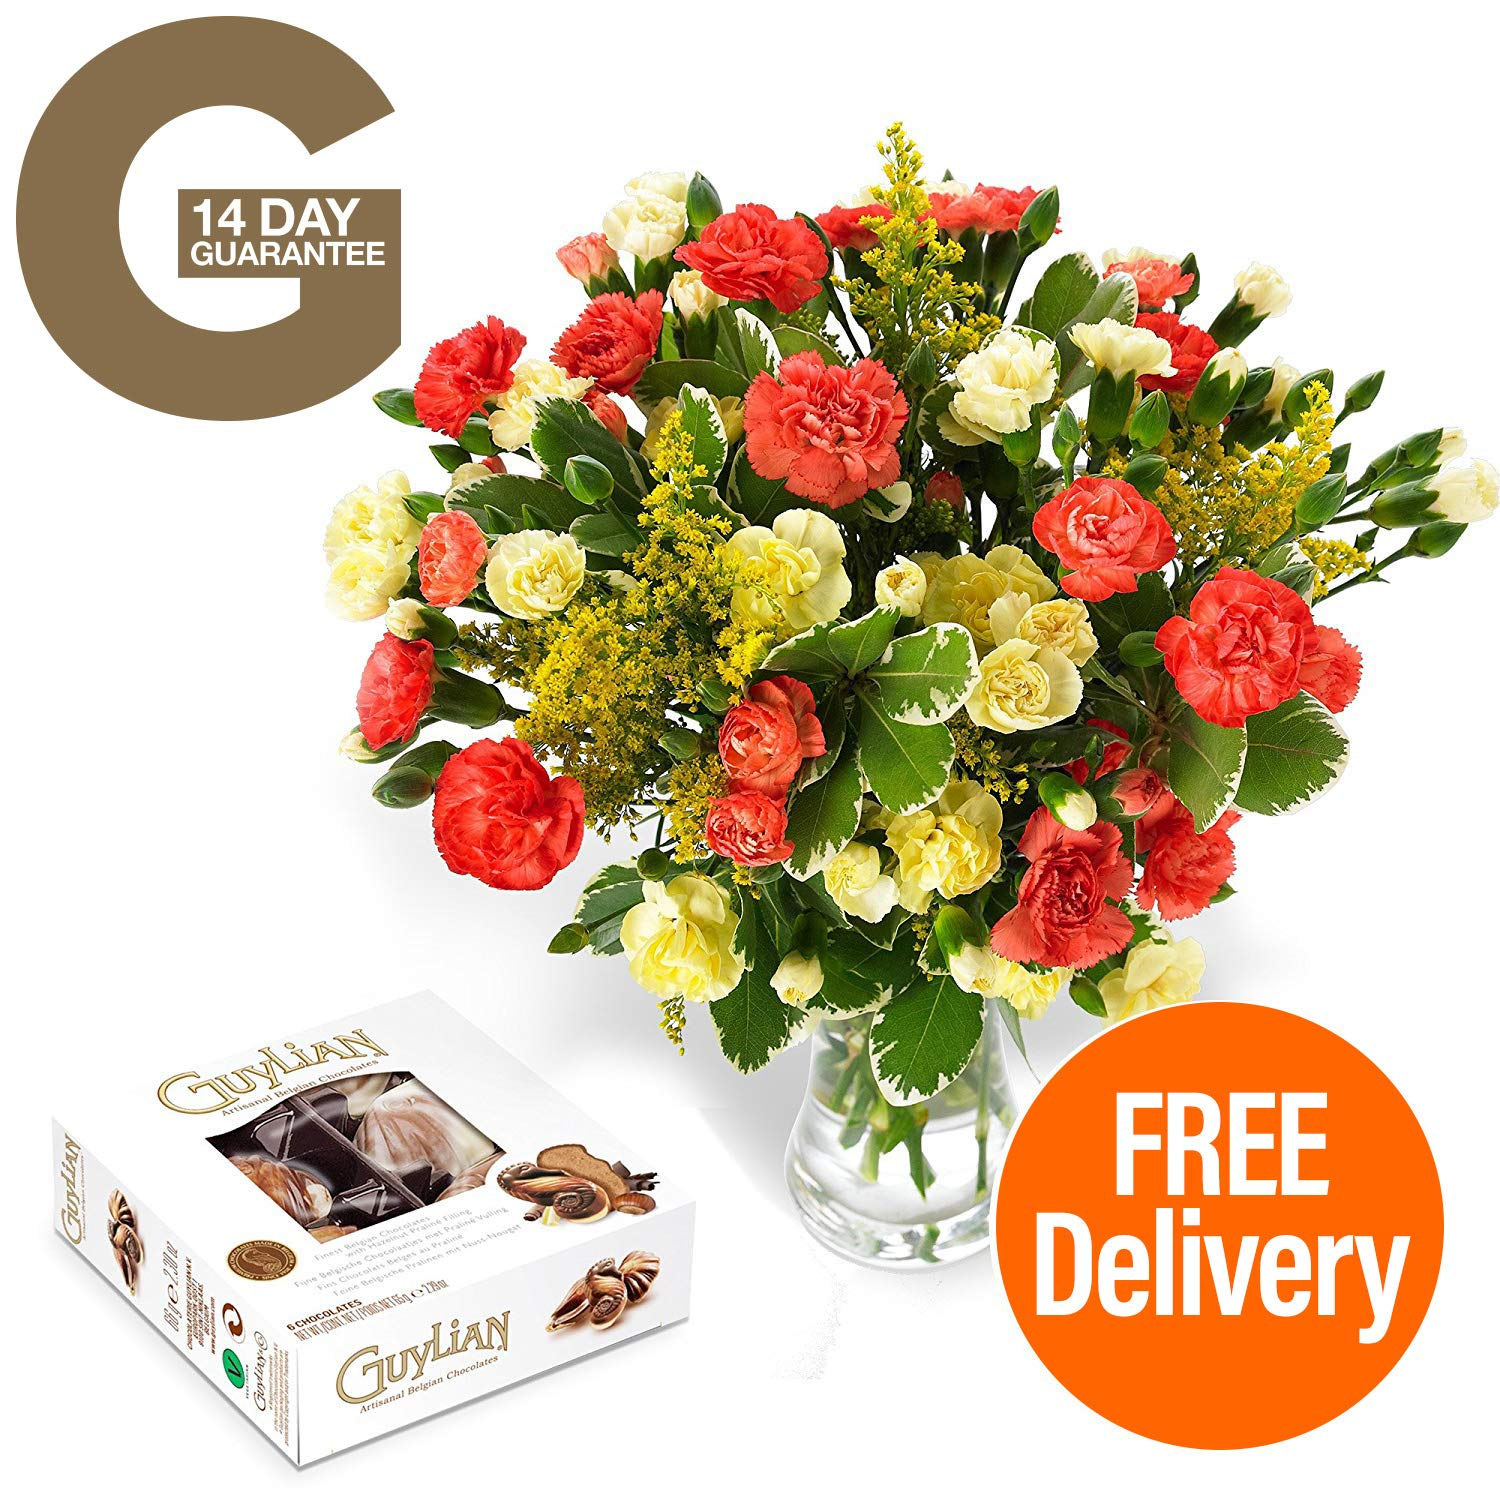 Fresh flowers delivered free uk delivery blazing spray carnation fresh flowers delivered free uk delivery blazing spray carnation bouquet with free chocolates flower food and bonus ebook guide perfect for birthdays izmirmasajfo